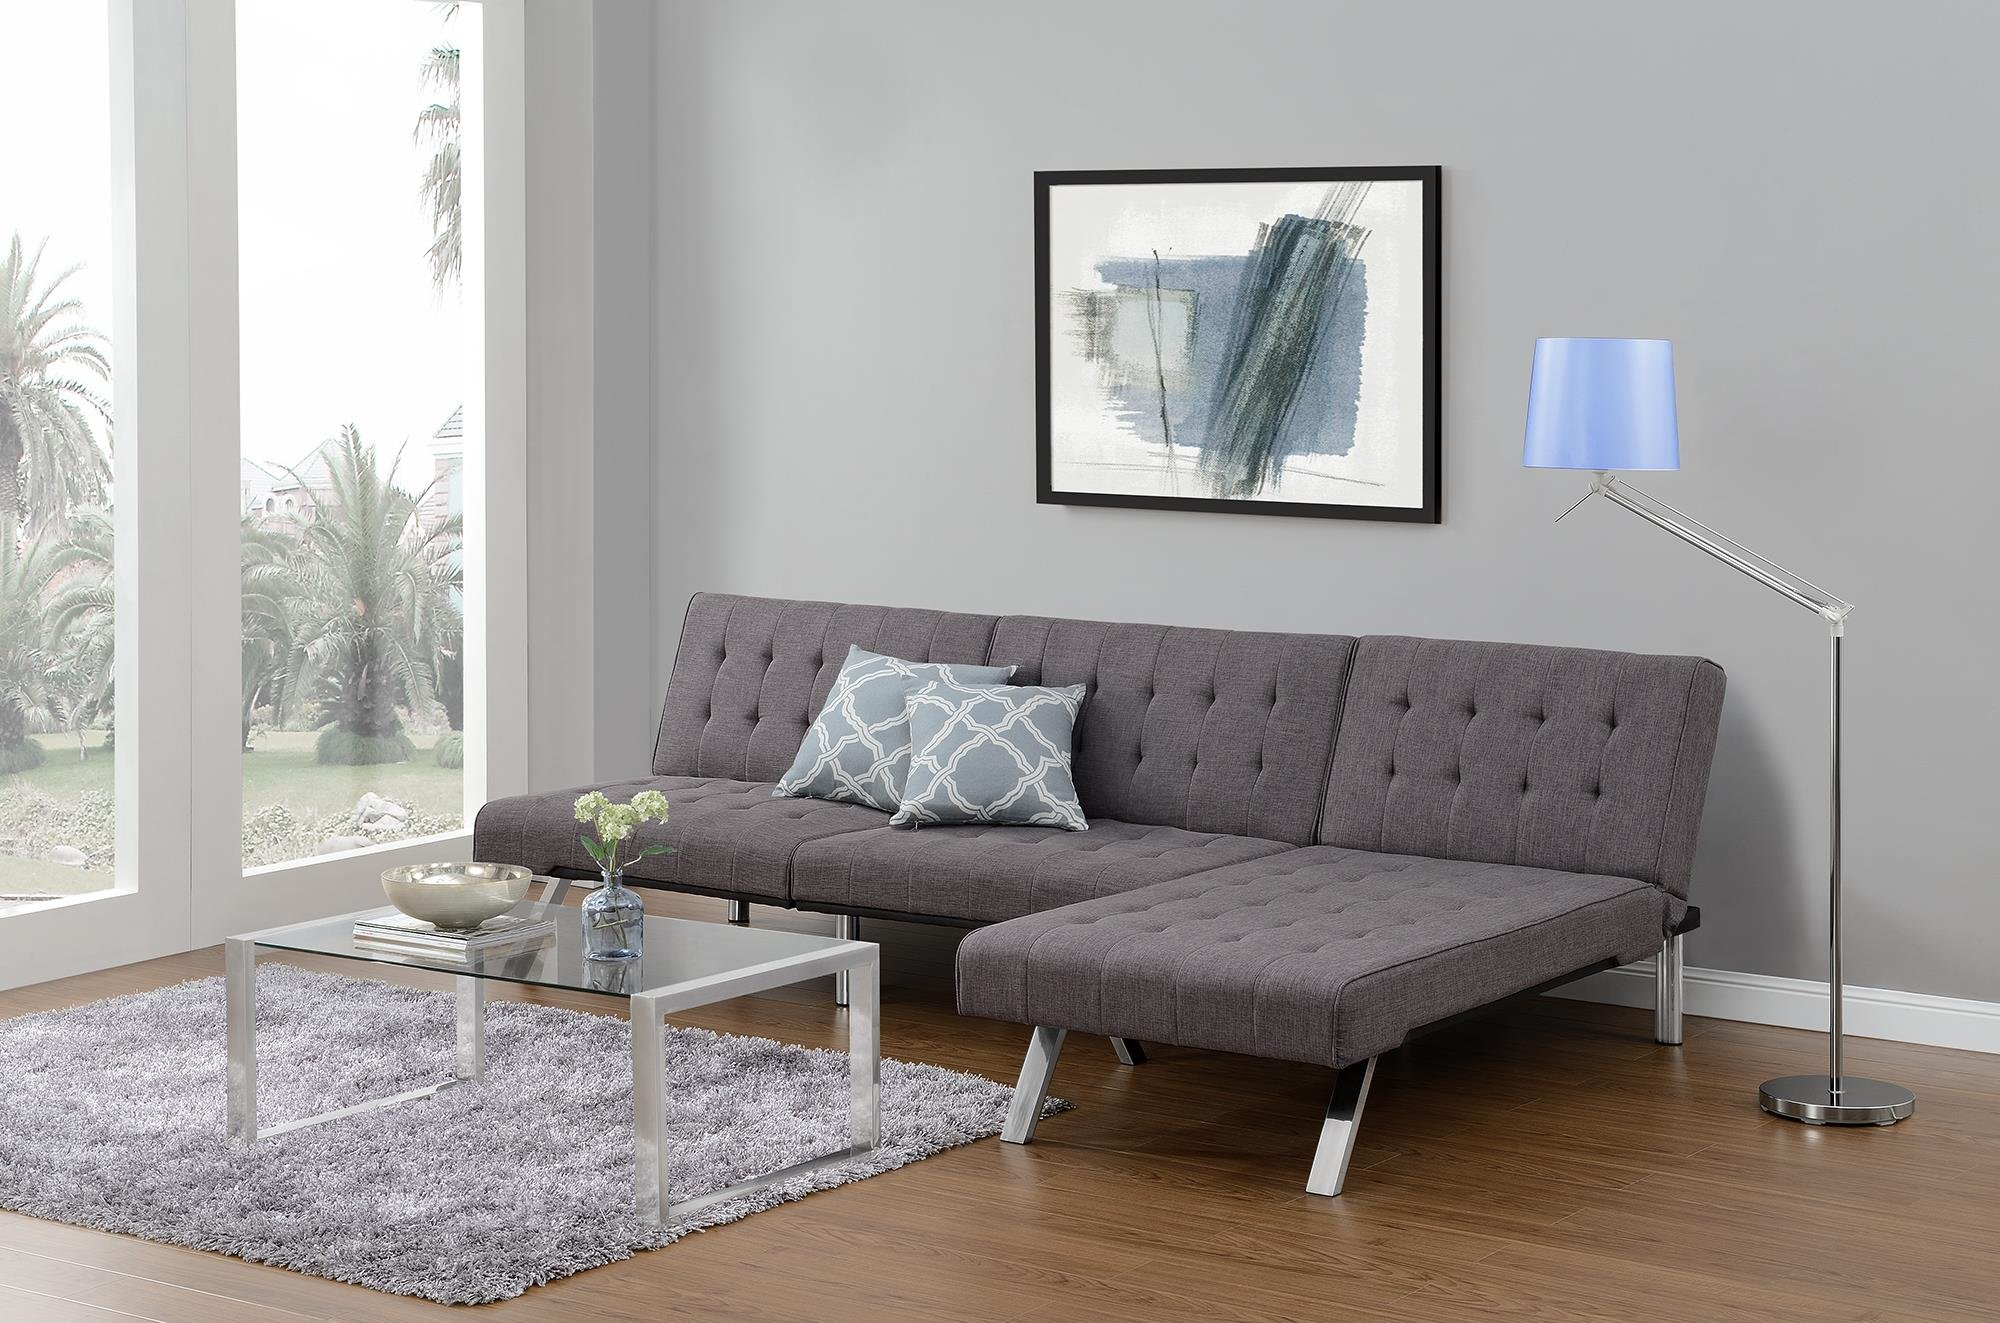 DHP Emily Linen Chaise Lounger, Stylish Design with Chrome Legs, Grey by DHP (Image #7)